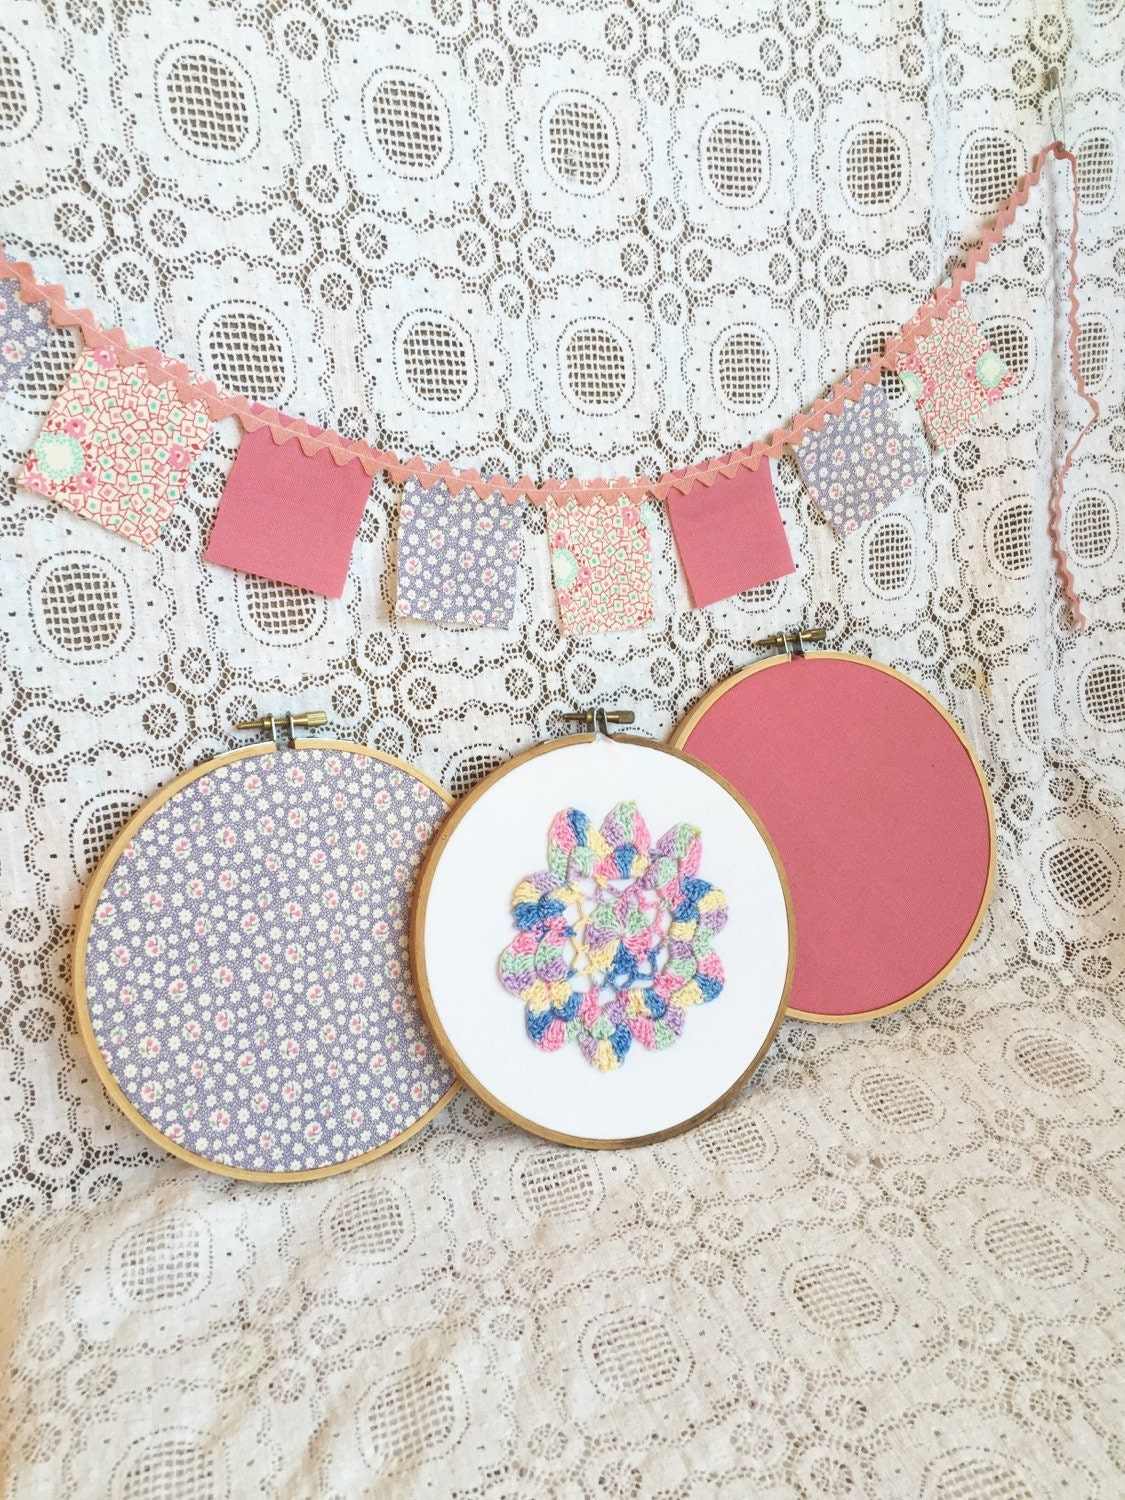 Fabric hoop art set of embroidery hoops with mini flag